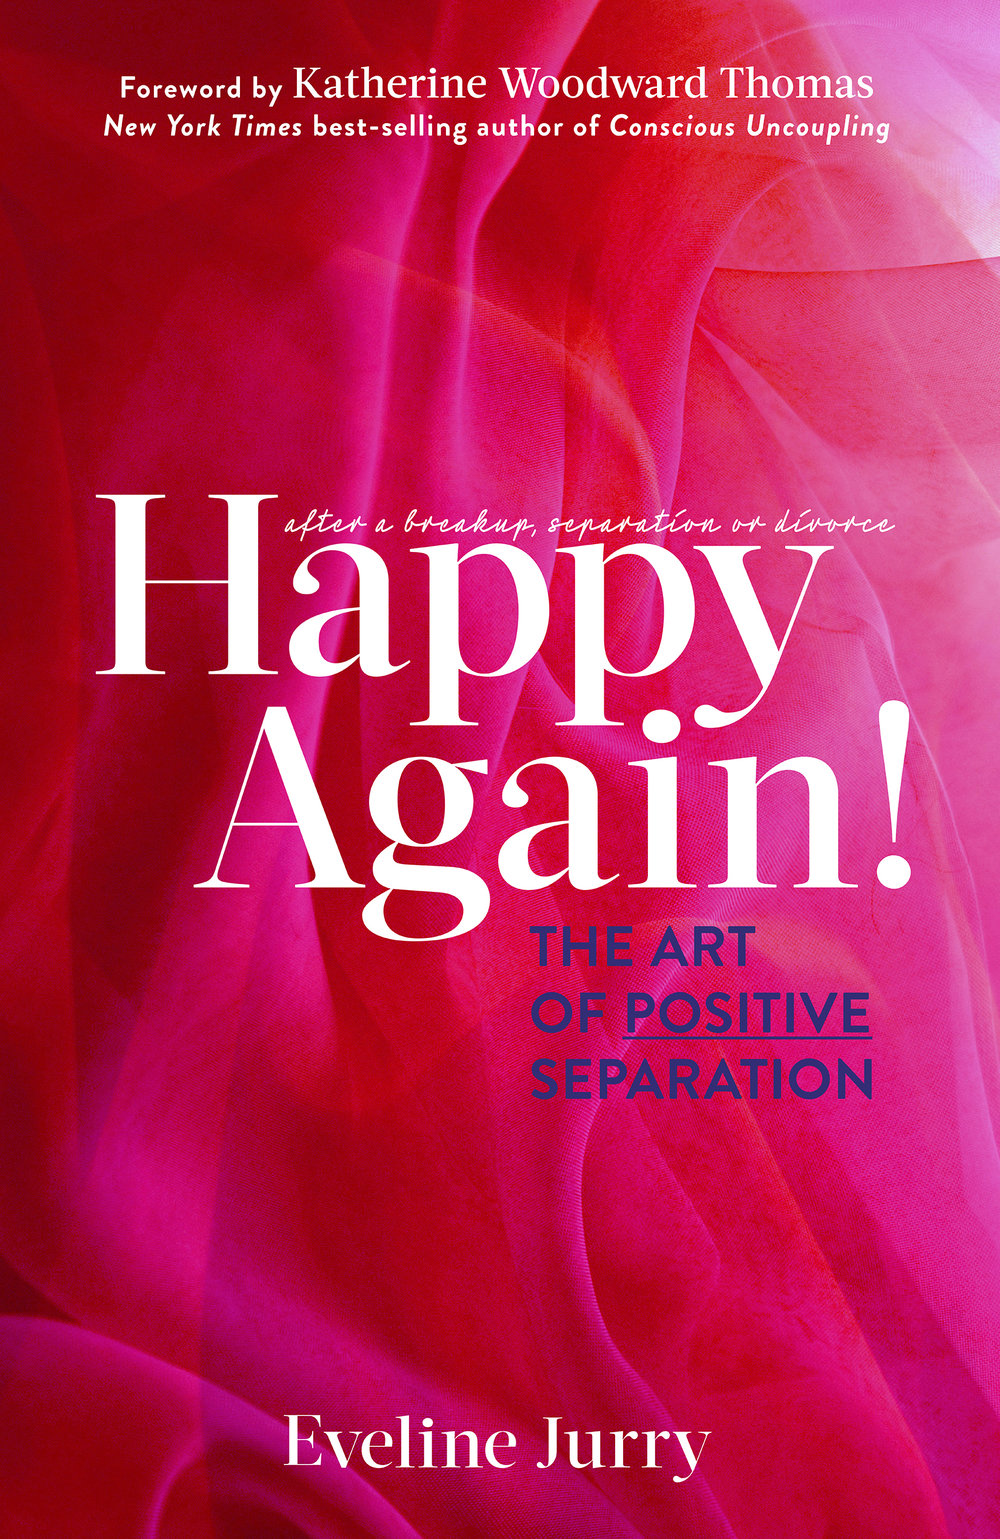 Happy Again Cover Eveline Jurry front small.jpg